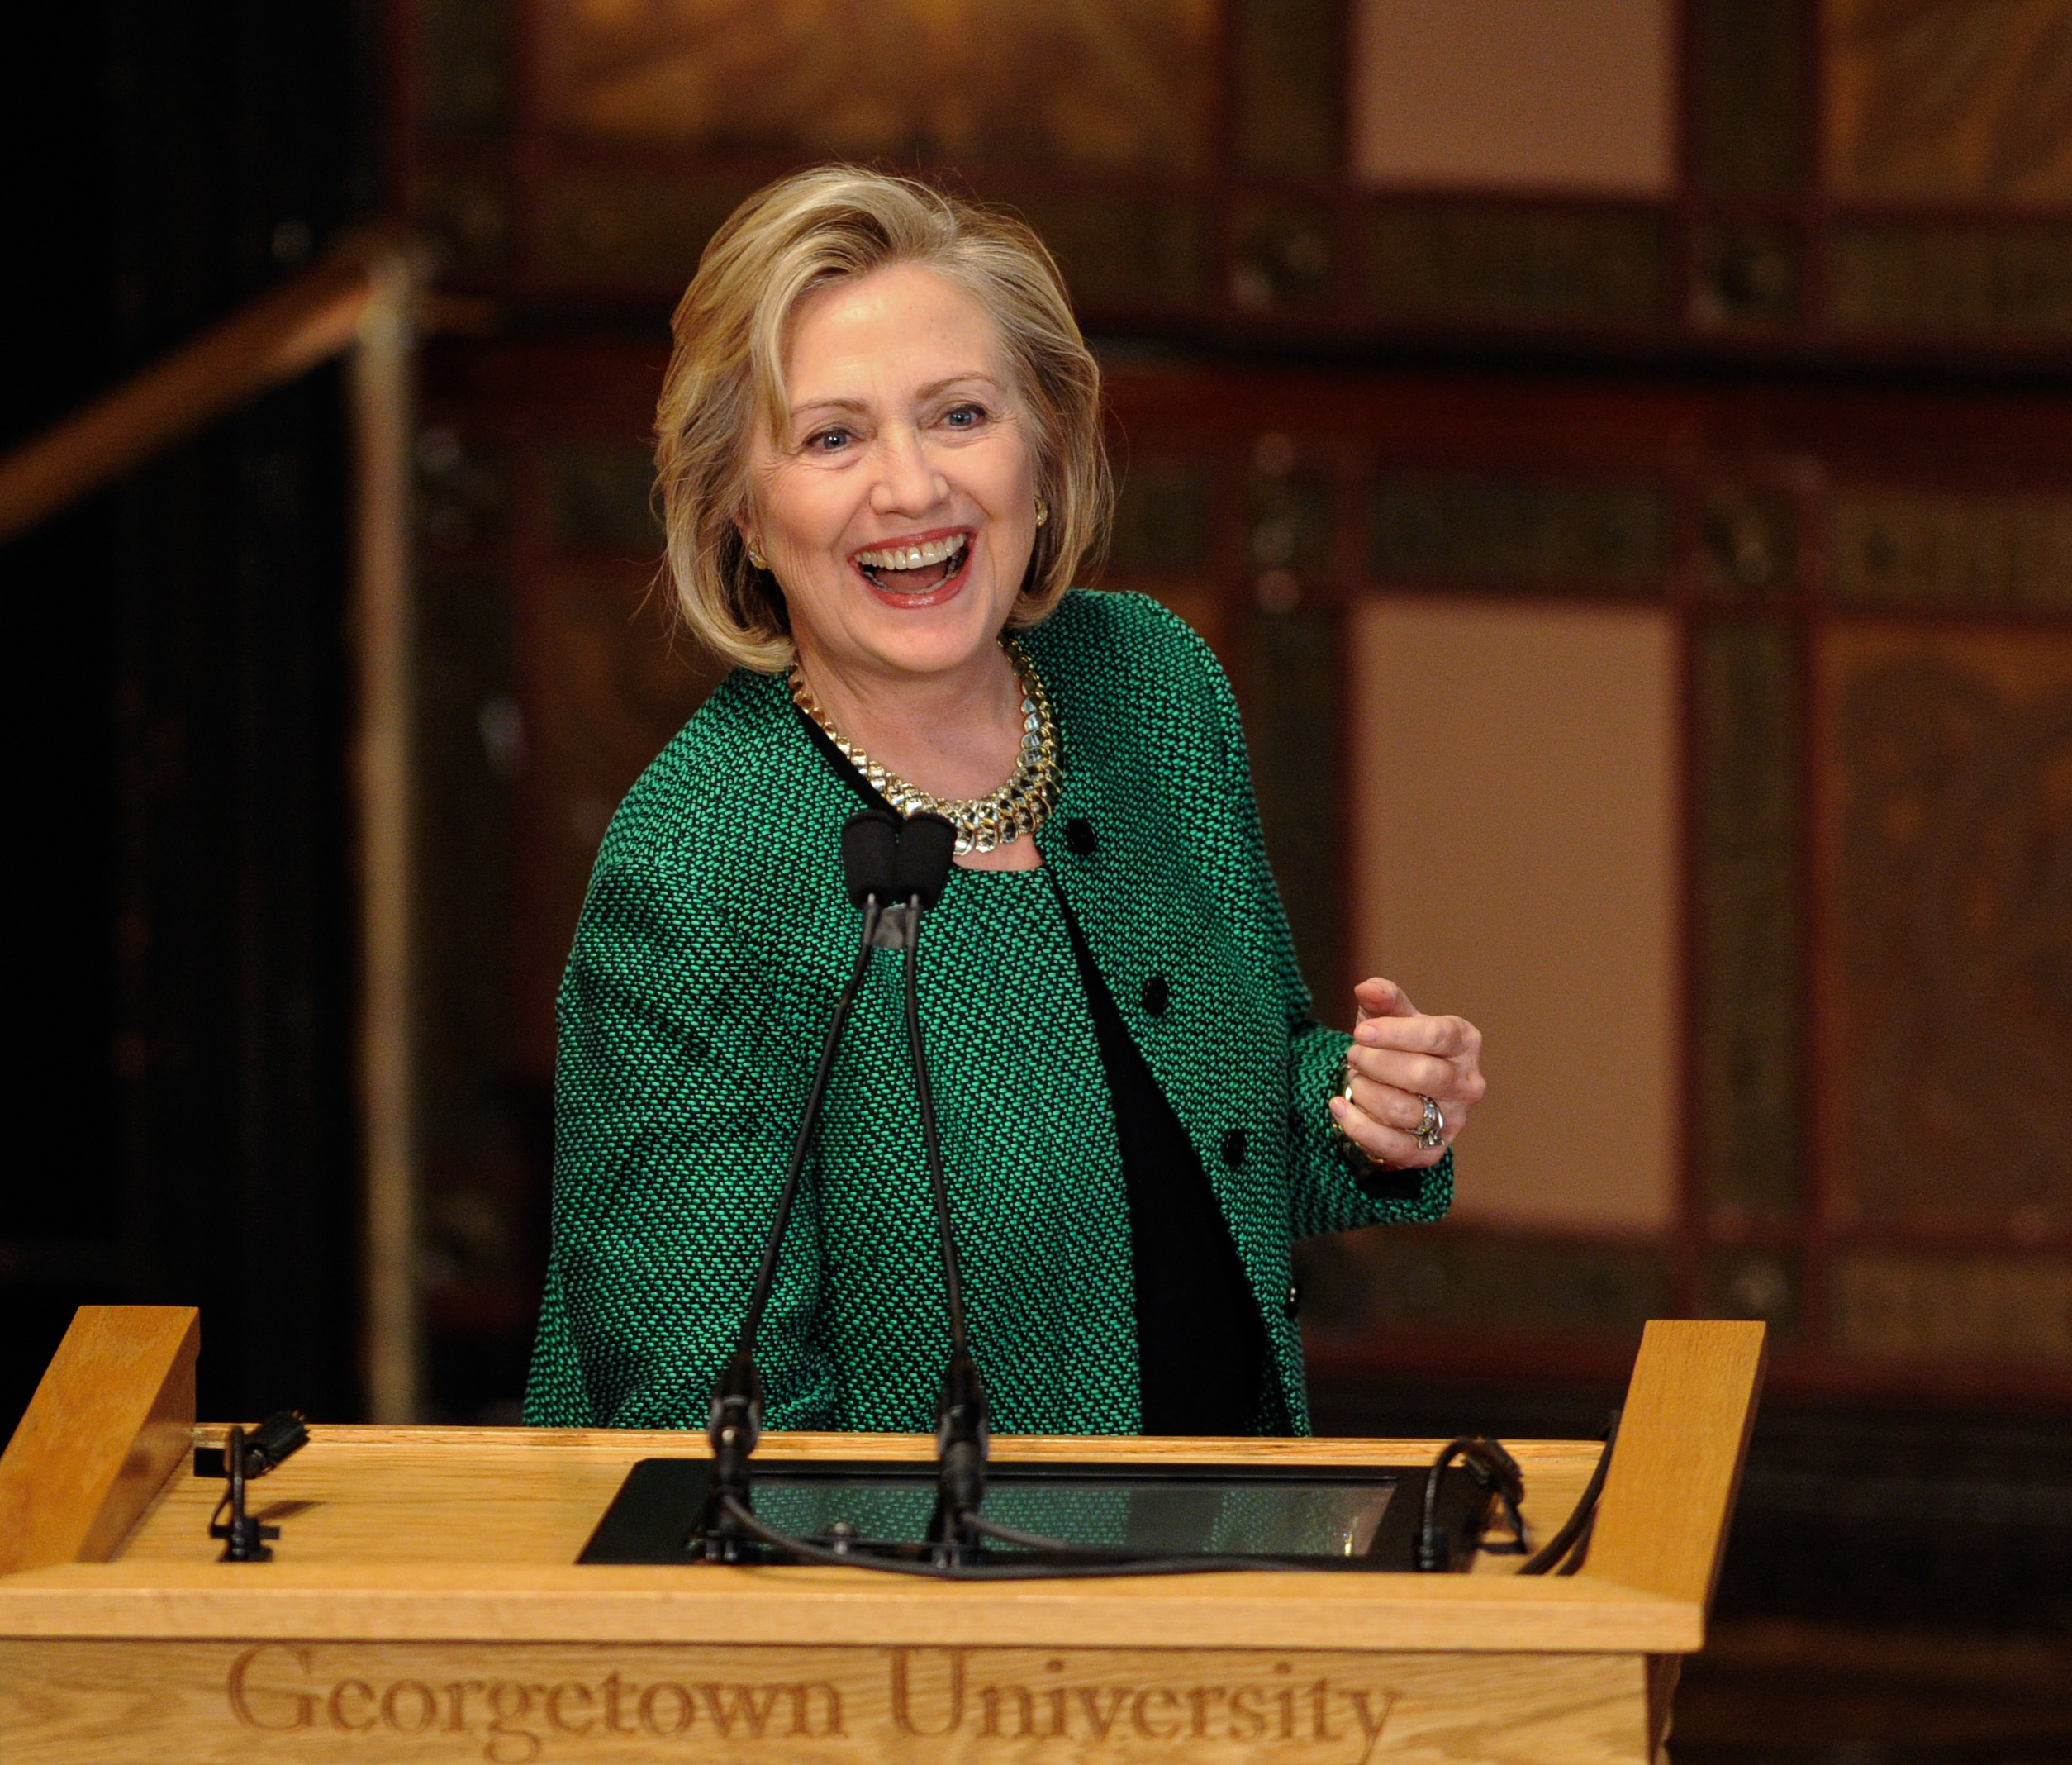 U.S.-NEW YORK-HILLARY CLINTON-PRESIDENTIAL ELECTION-ANNOUNCEMENT